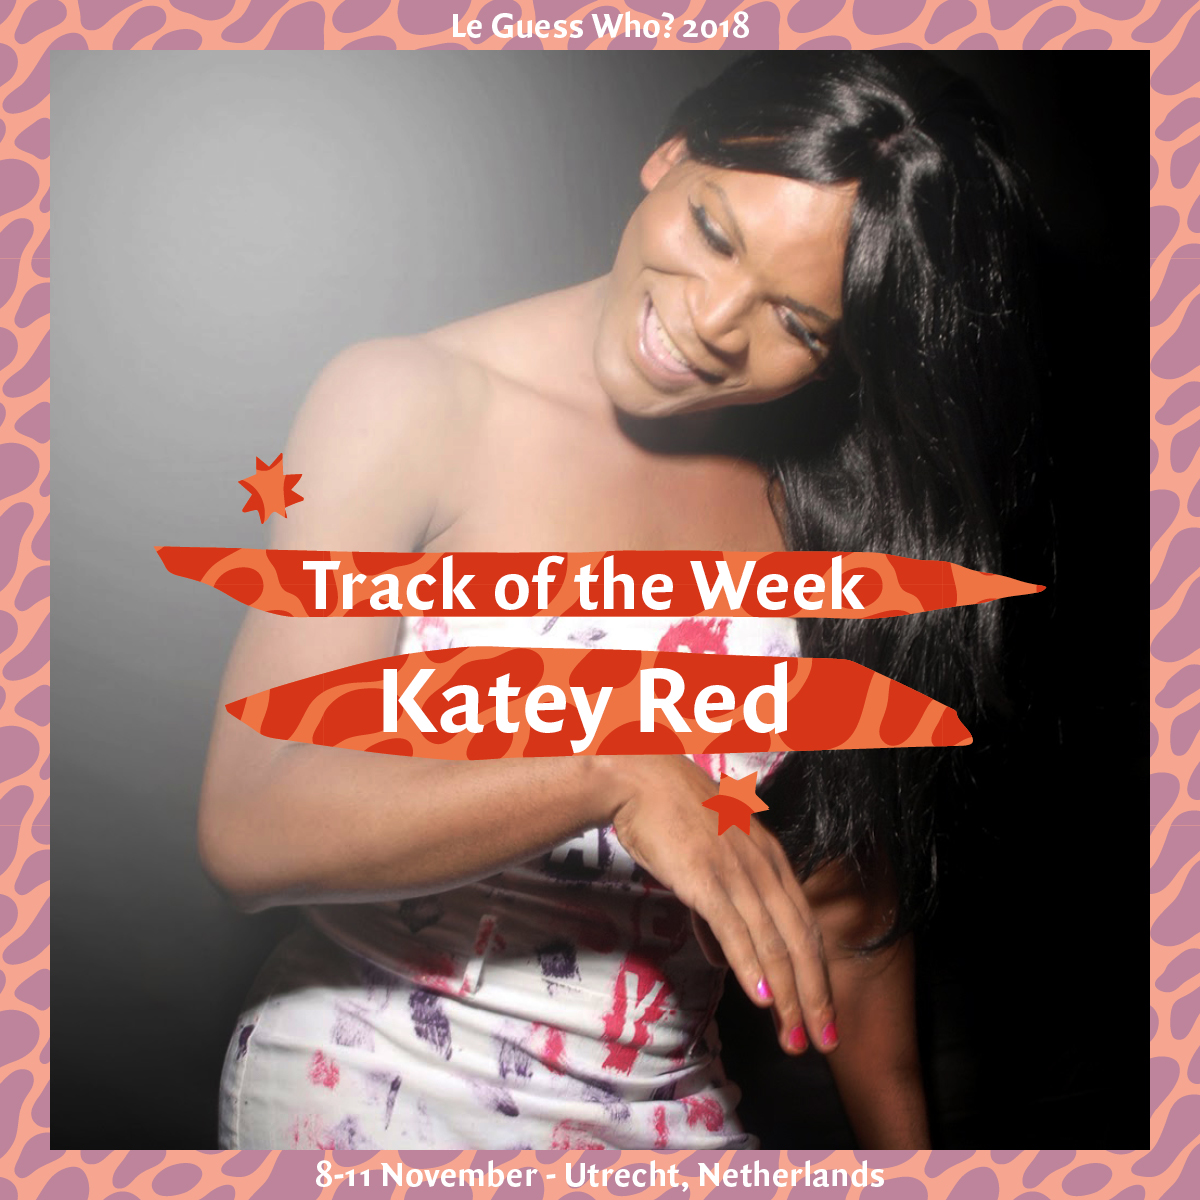 Track of the Week #7: Katey Red - 'Where Da Melph At'